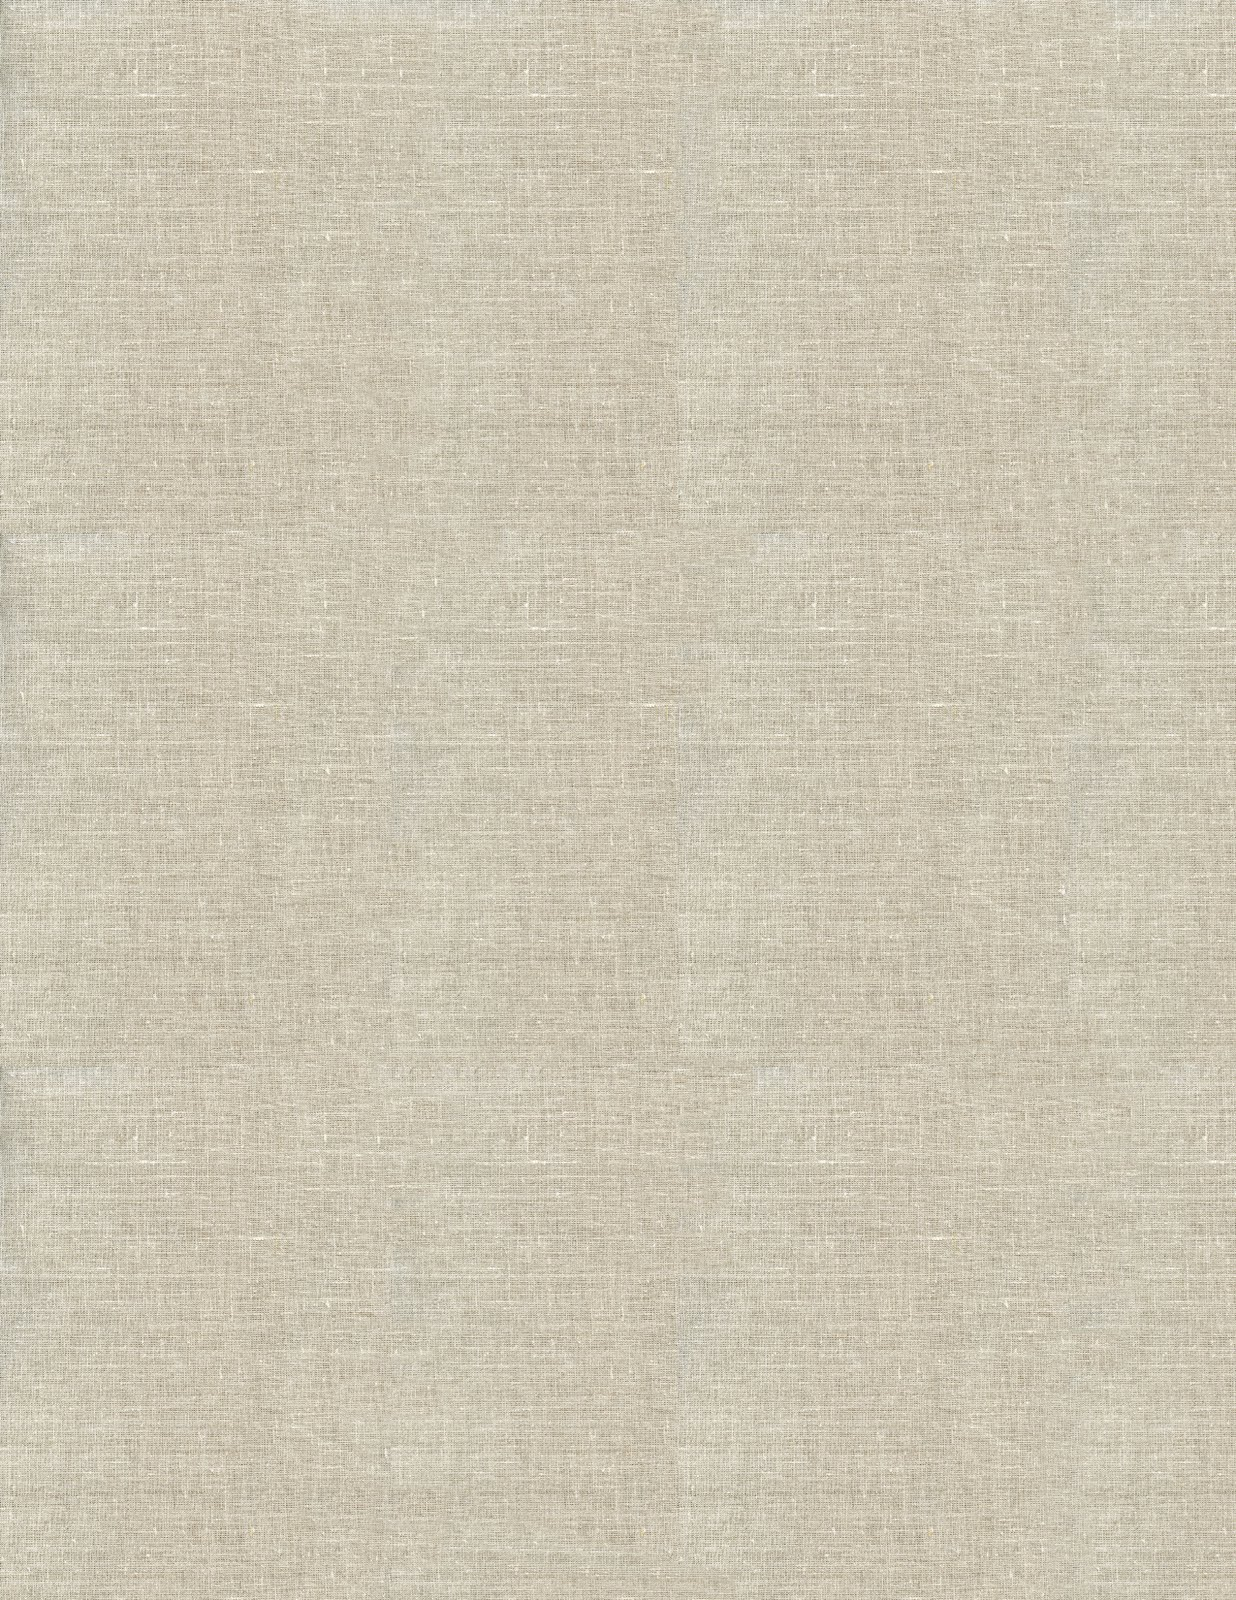 linen paper Define linen paper linen paper synonyms, linen paper pronunciation, linen paper translation, english dictionary definition of linen paper n paper made from flax.